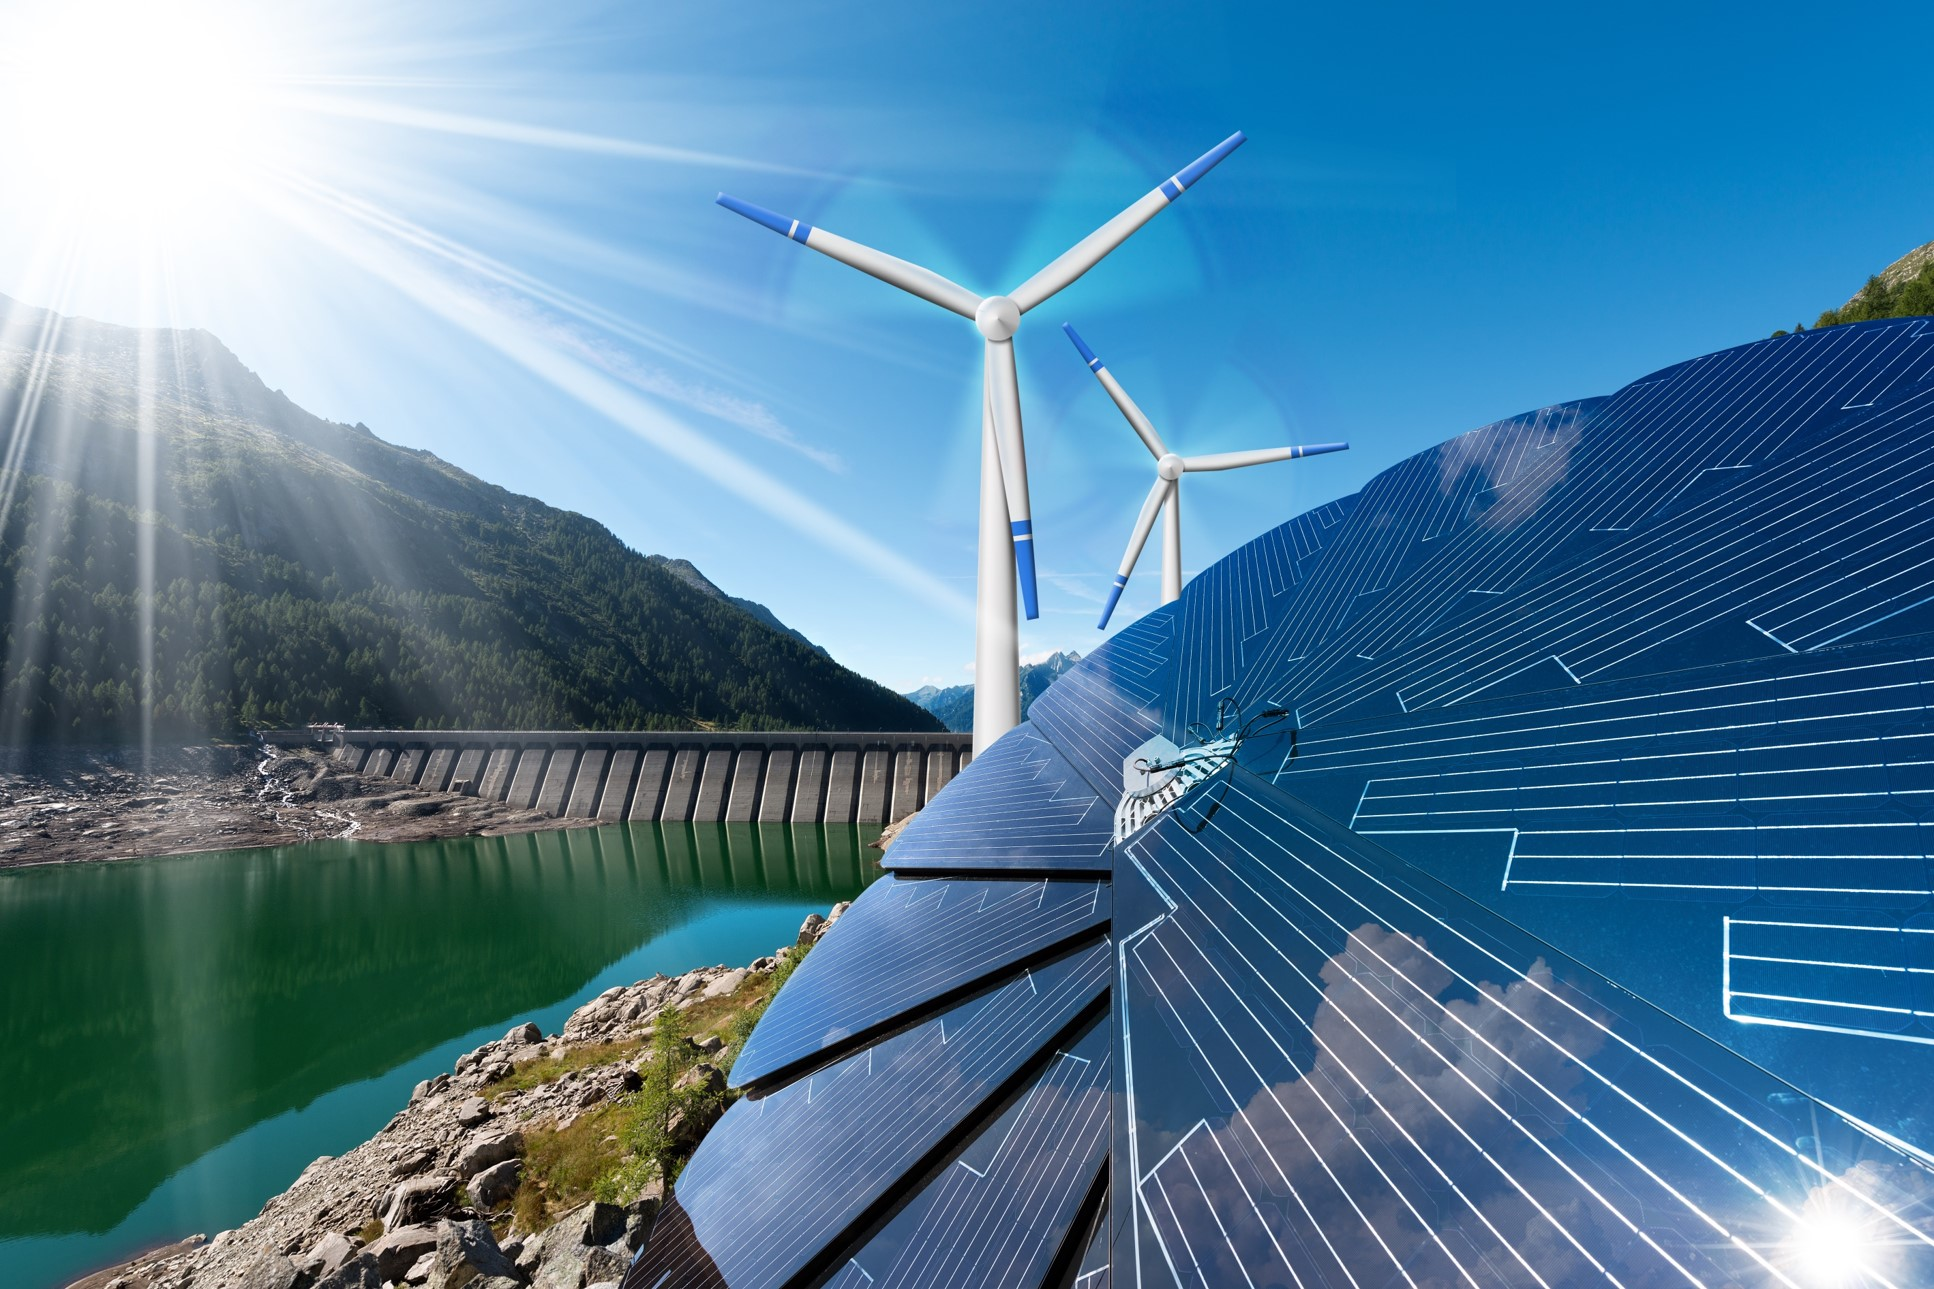 Energy and mining sector image